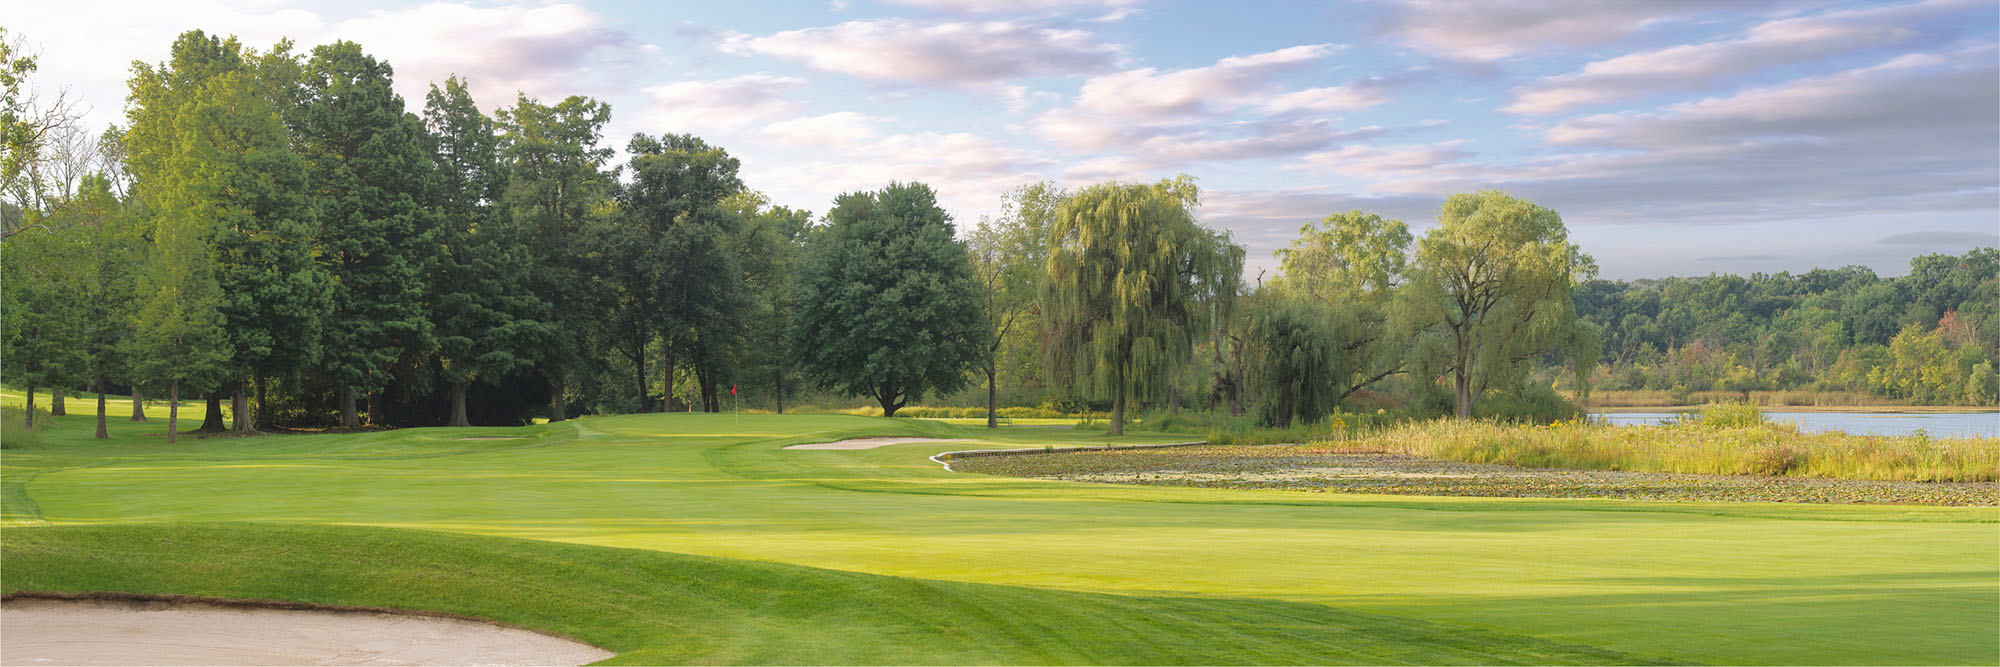 Golf Course Image - South Bend No. 5